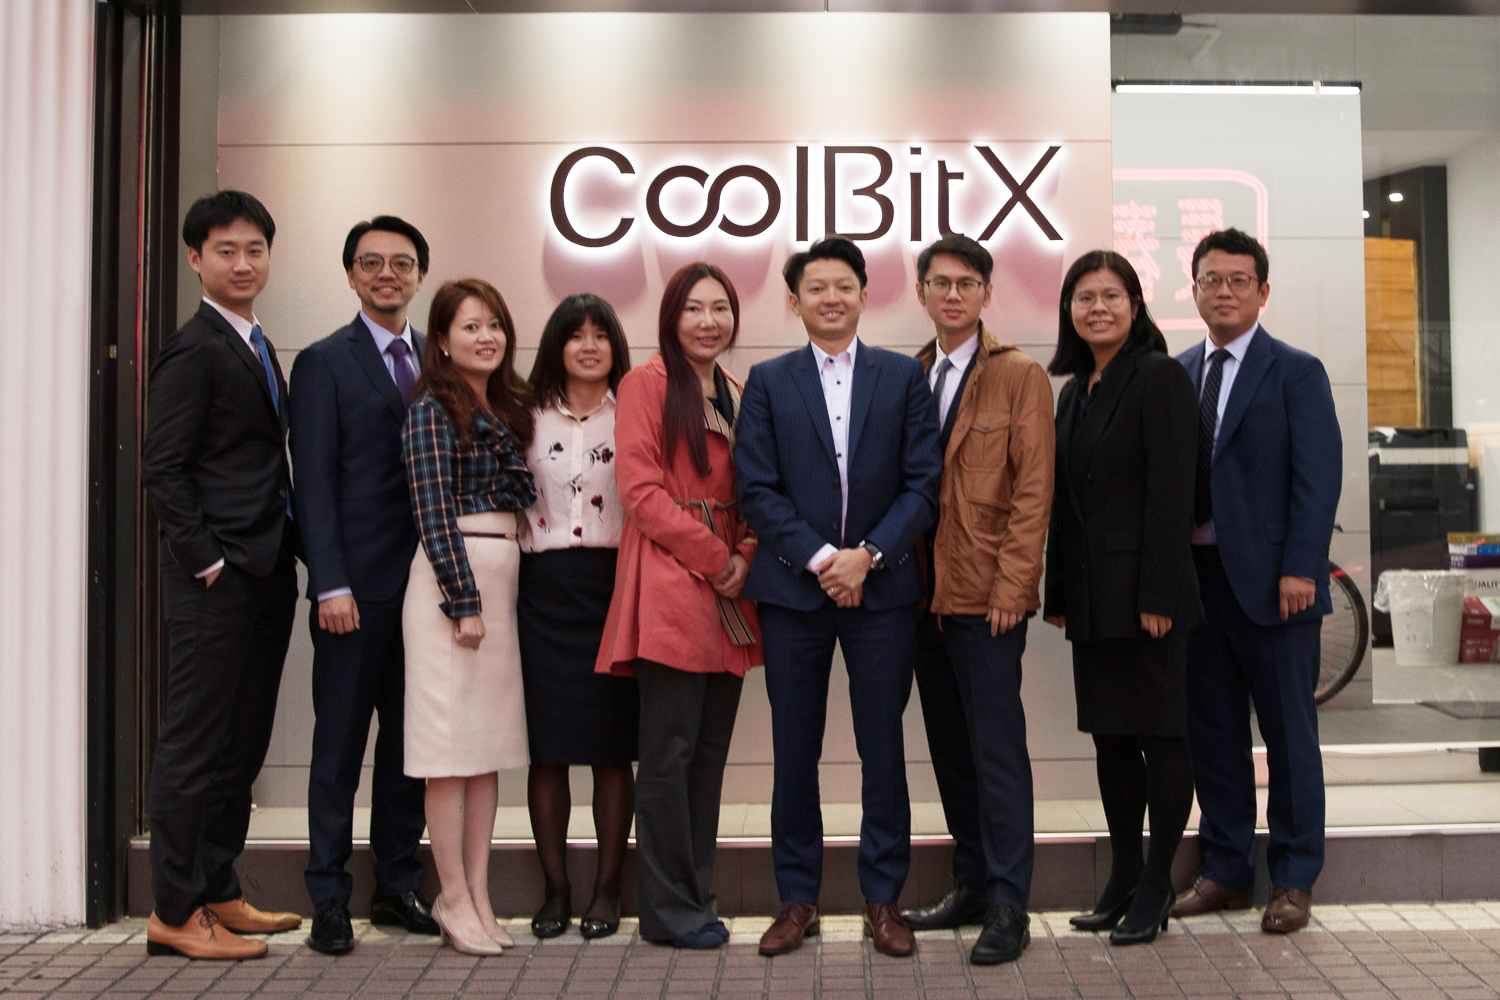 CoolBitX raises $16.75M Series B to help crypto exchanges comply with FATF's 'travel rule'